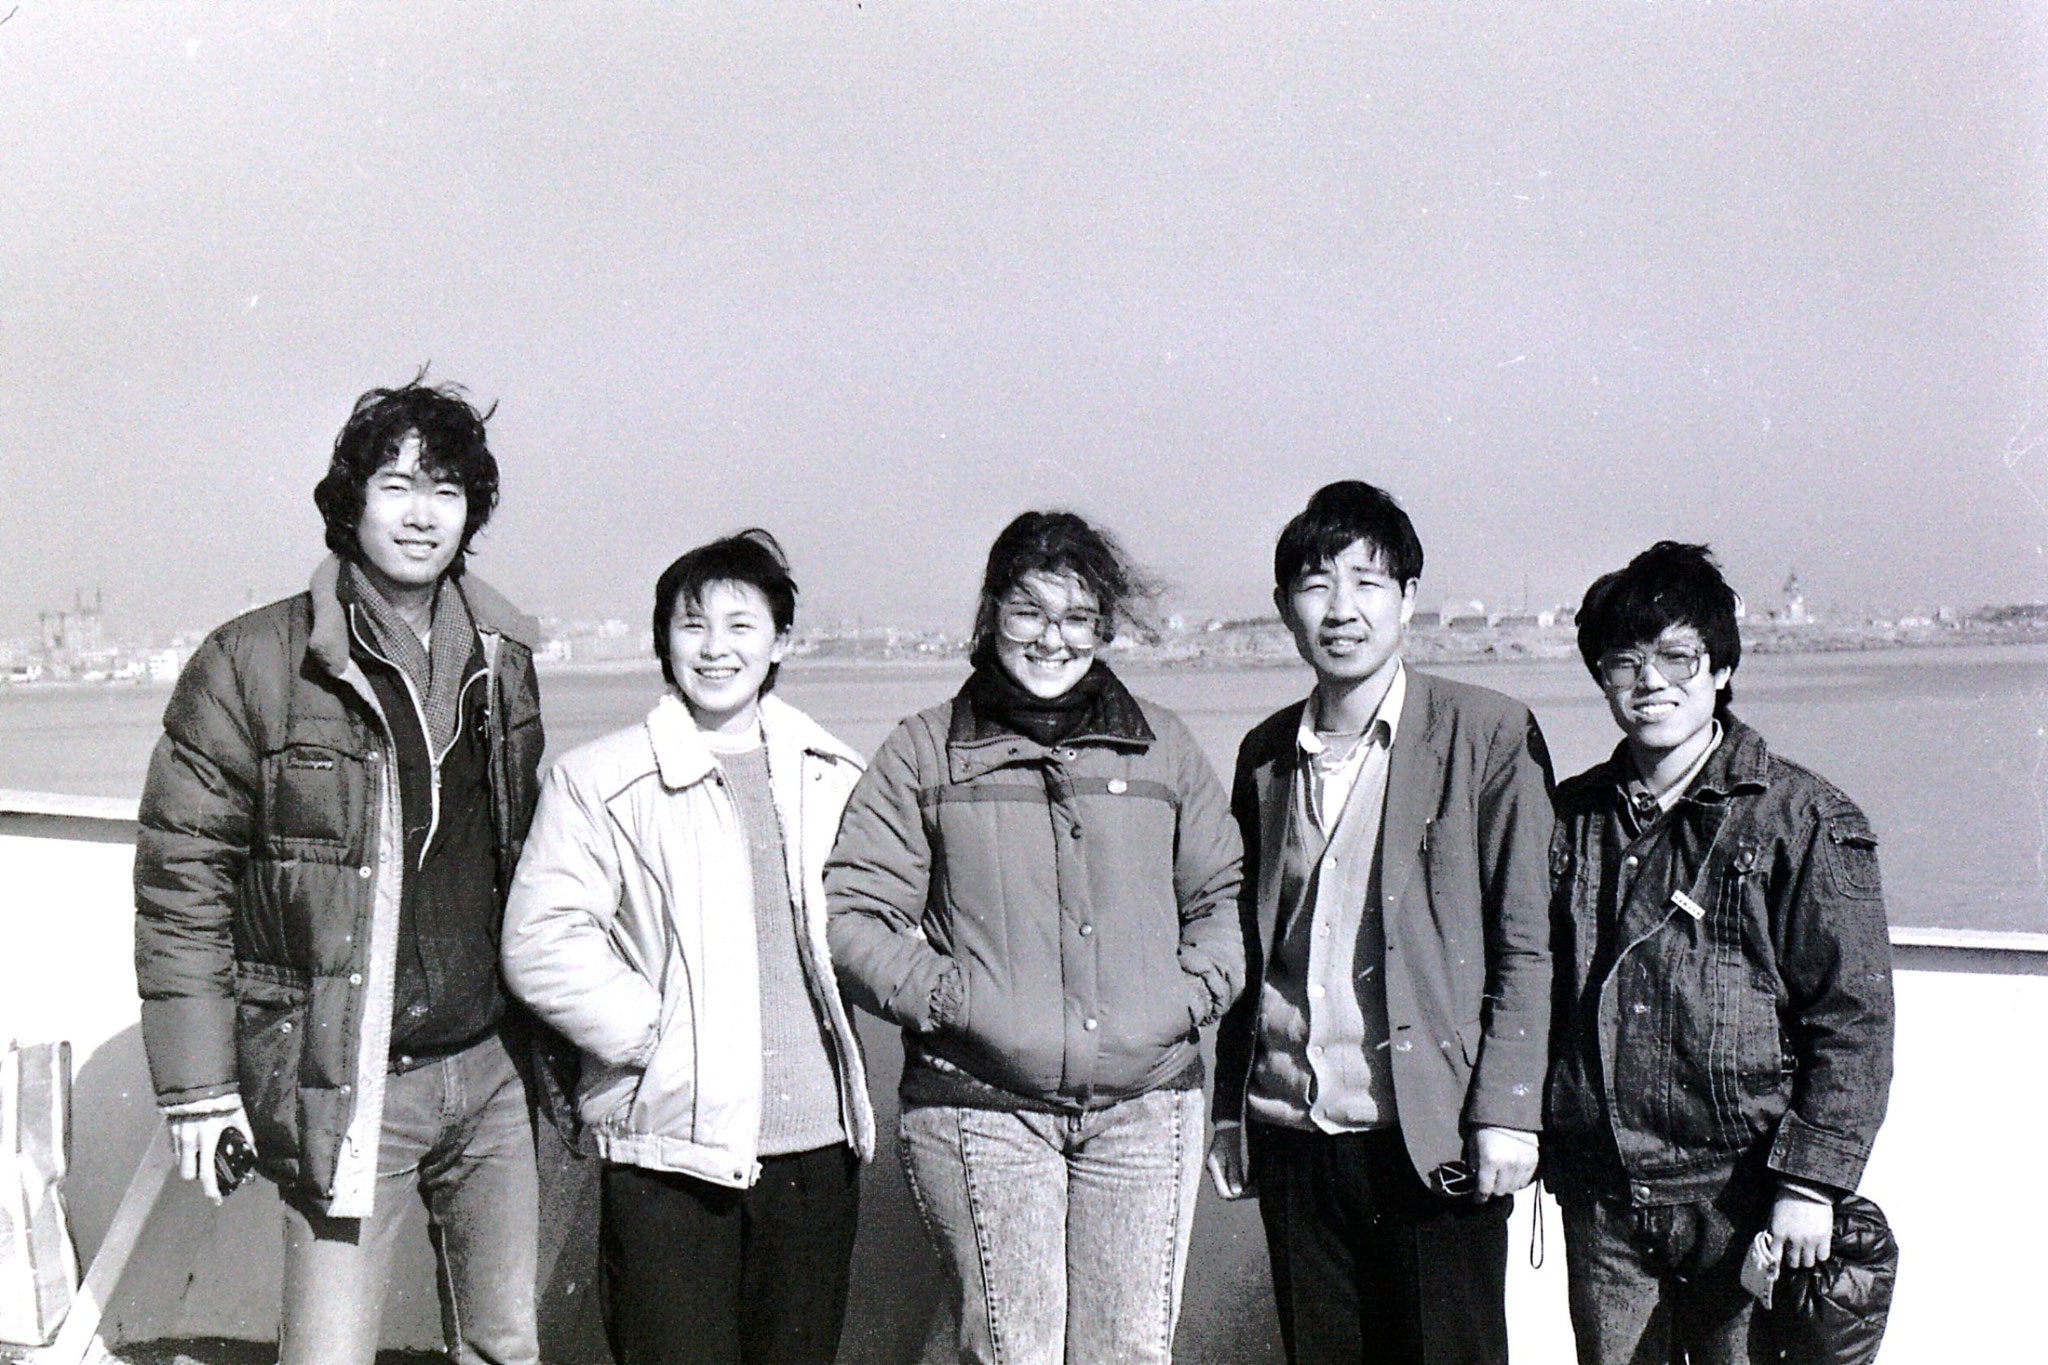 13/2/1989: 13: pictures on boat from Shanghai to Qingdao, arrival